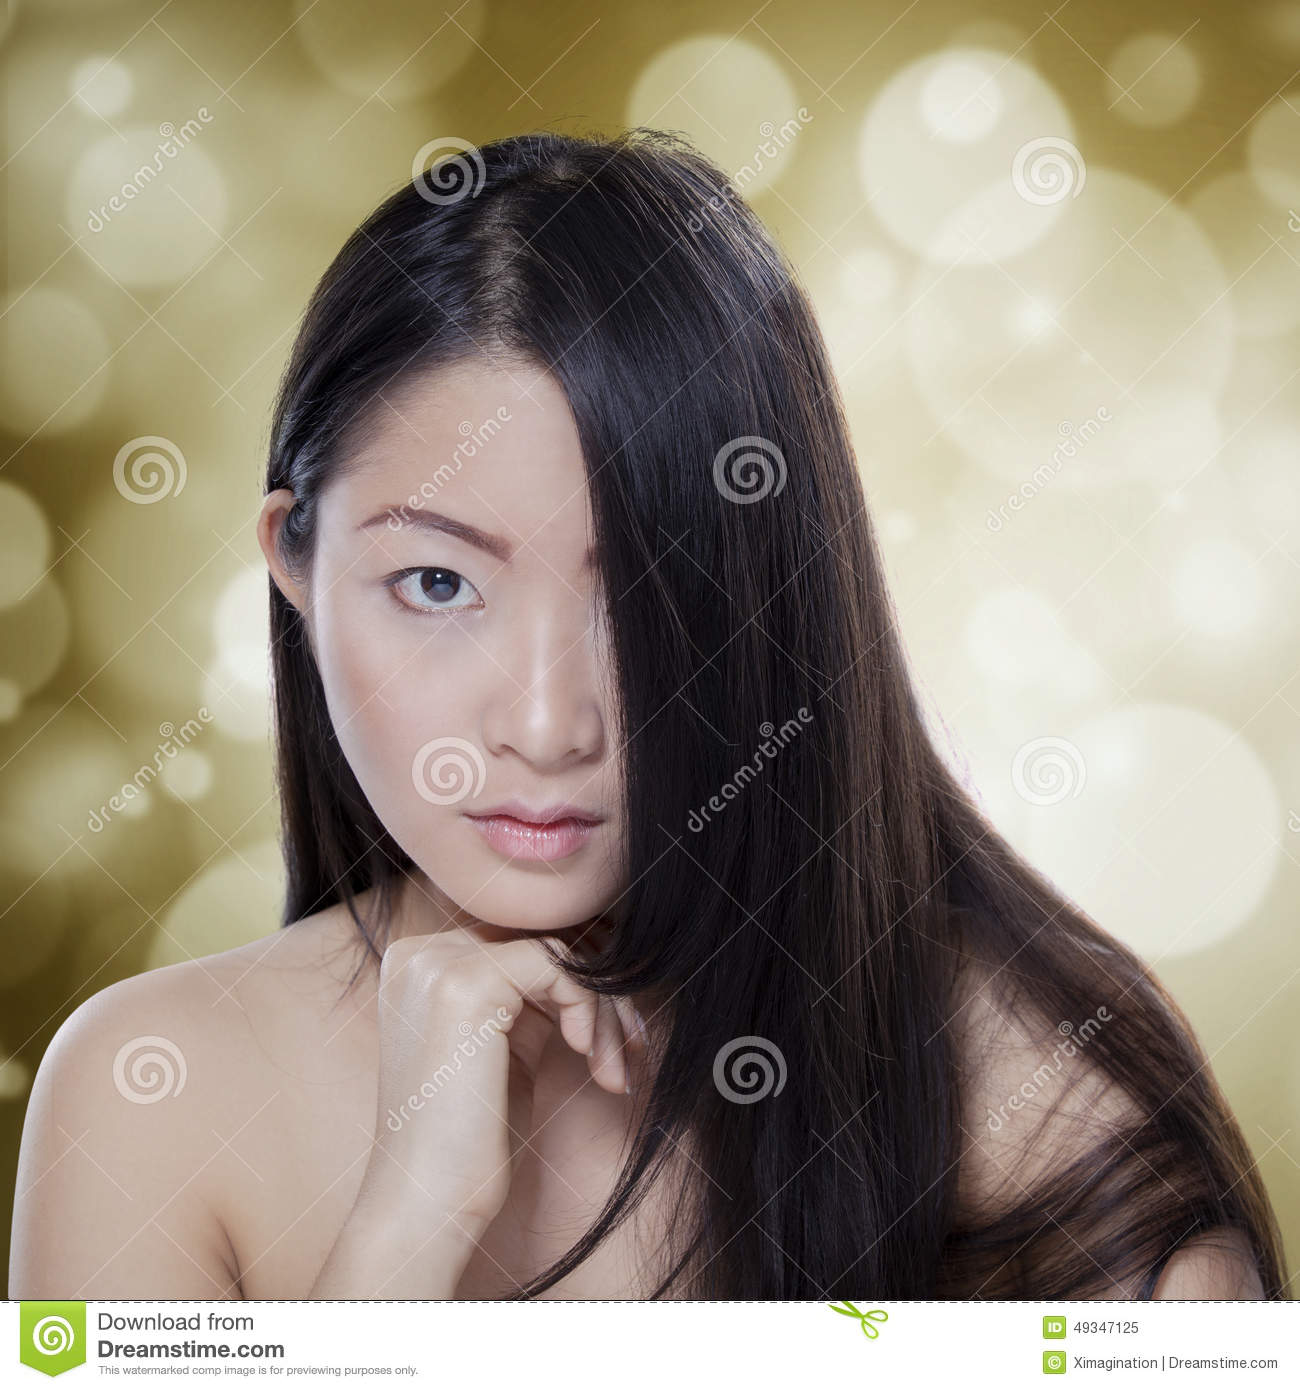 Girl With Black Hair And Healthy Skin Stock Photo Image